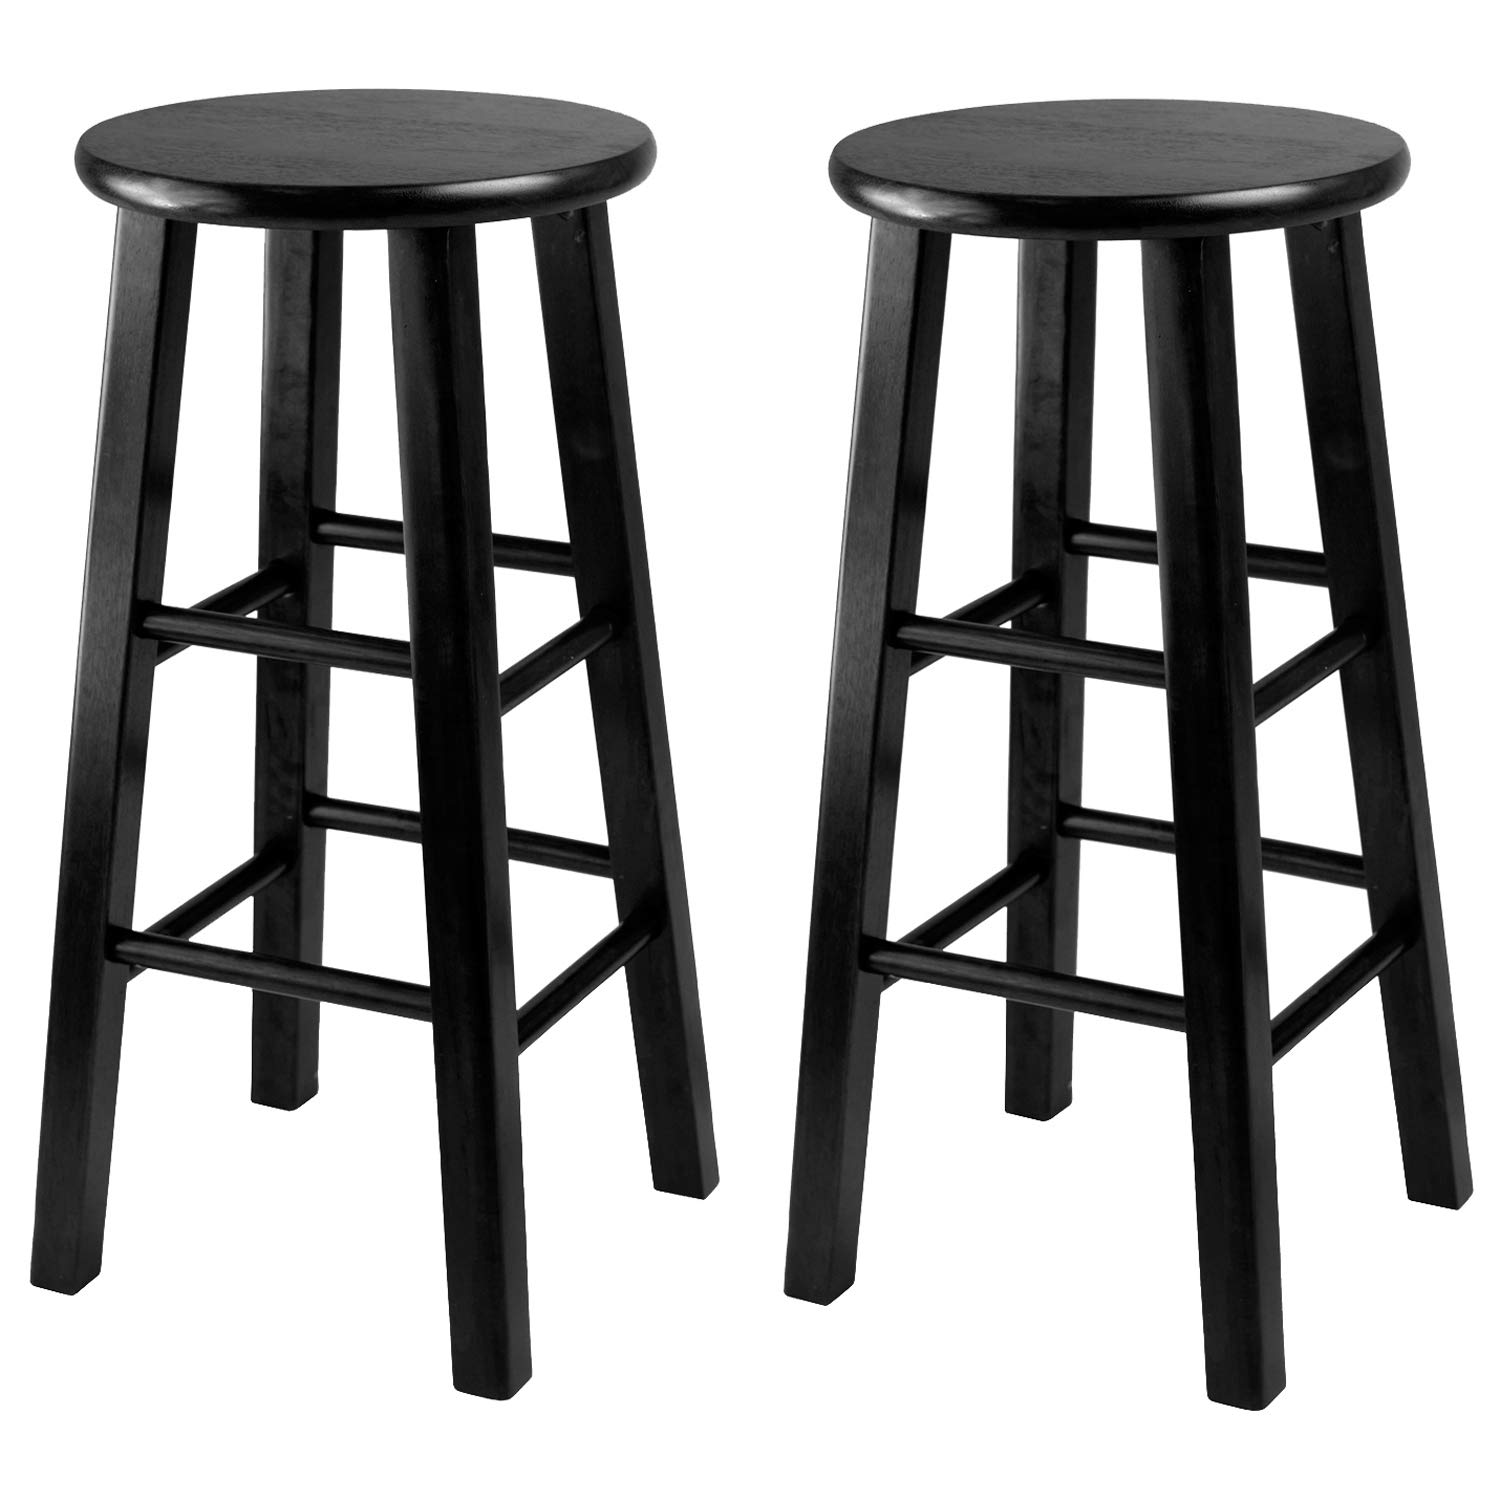 Winsome 24-Inch Square Leg Counter Stool, Black, Set of 2 by Winsome